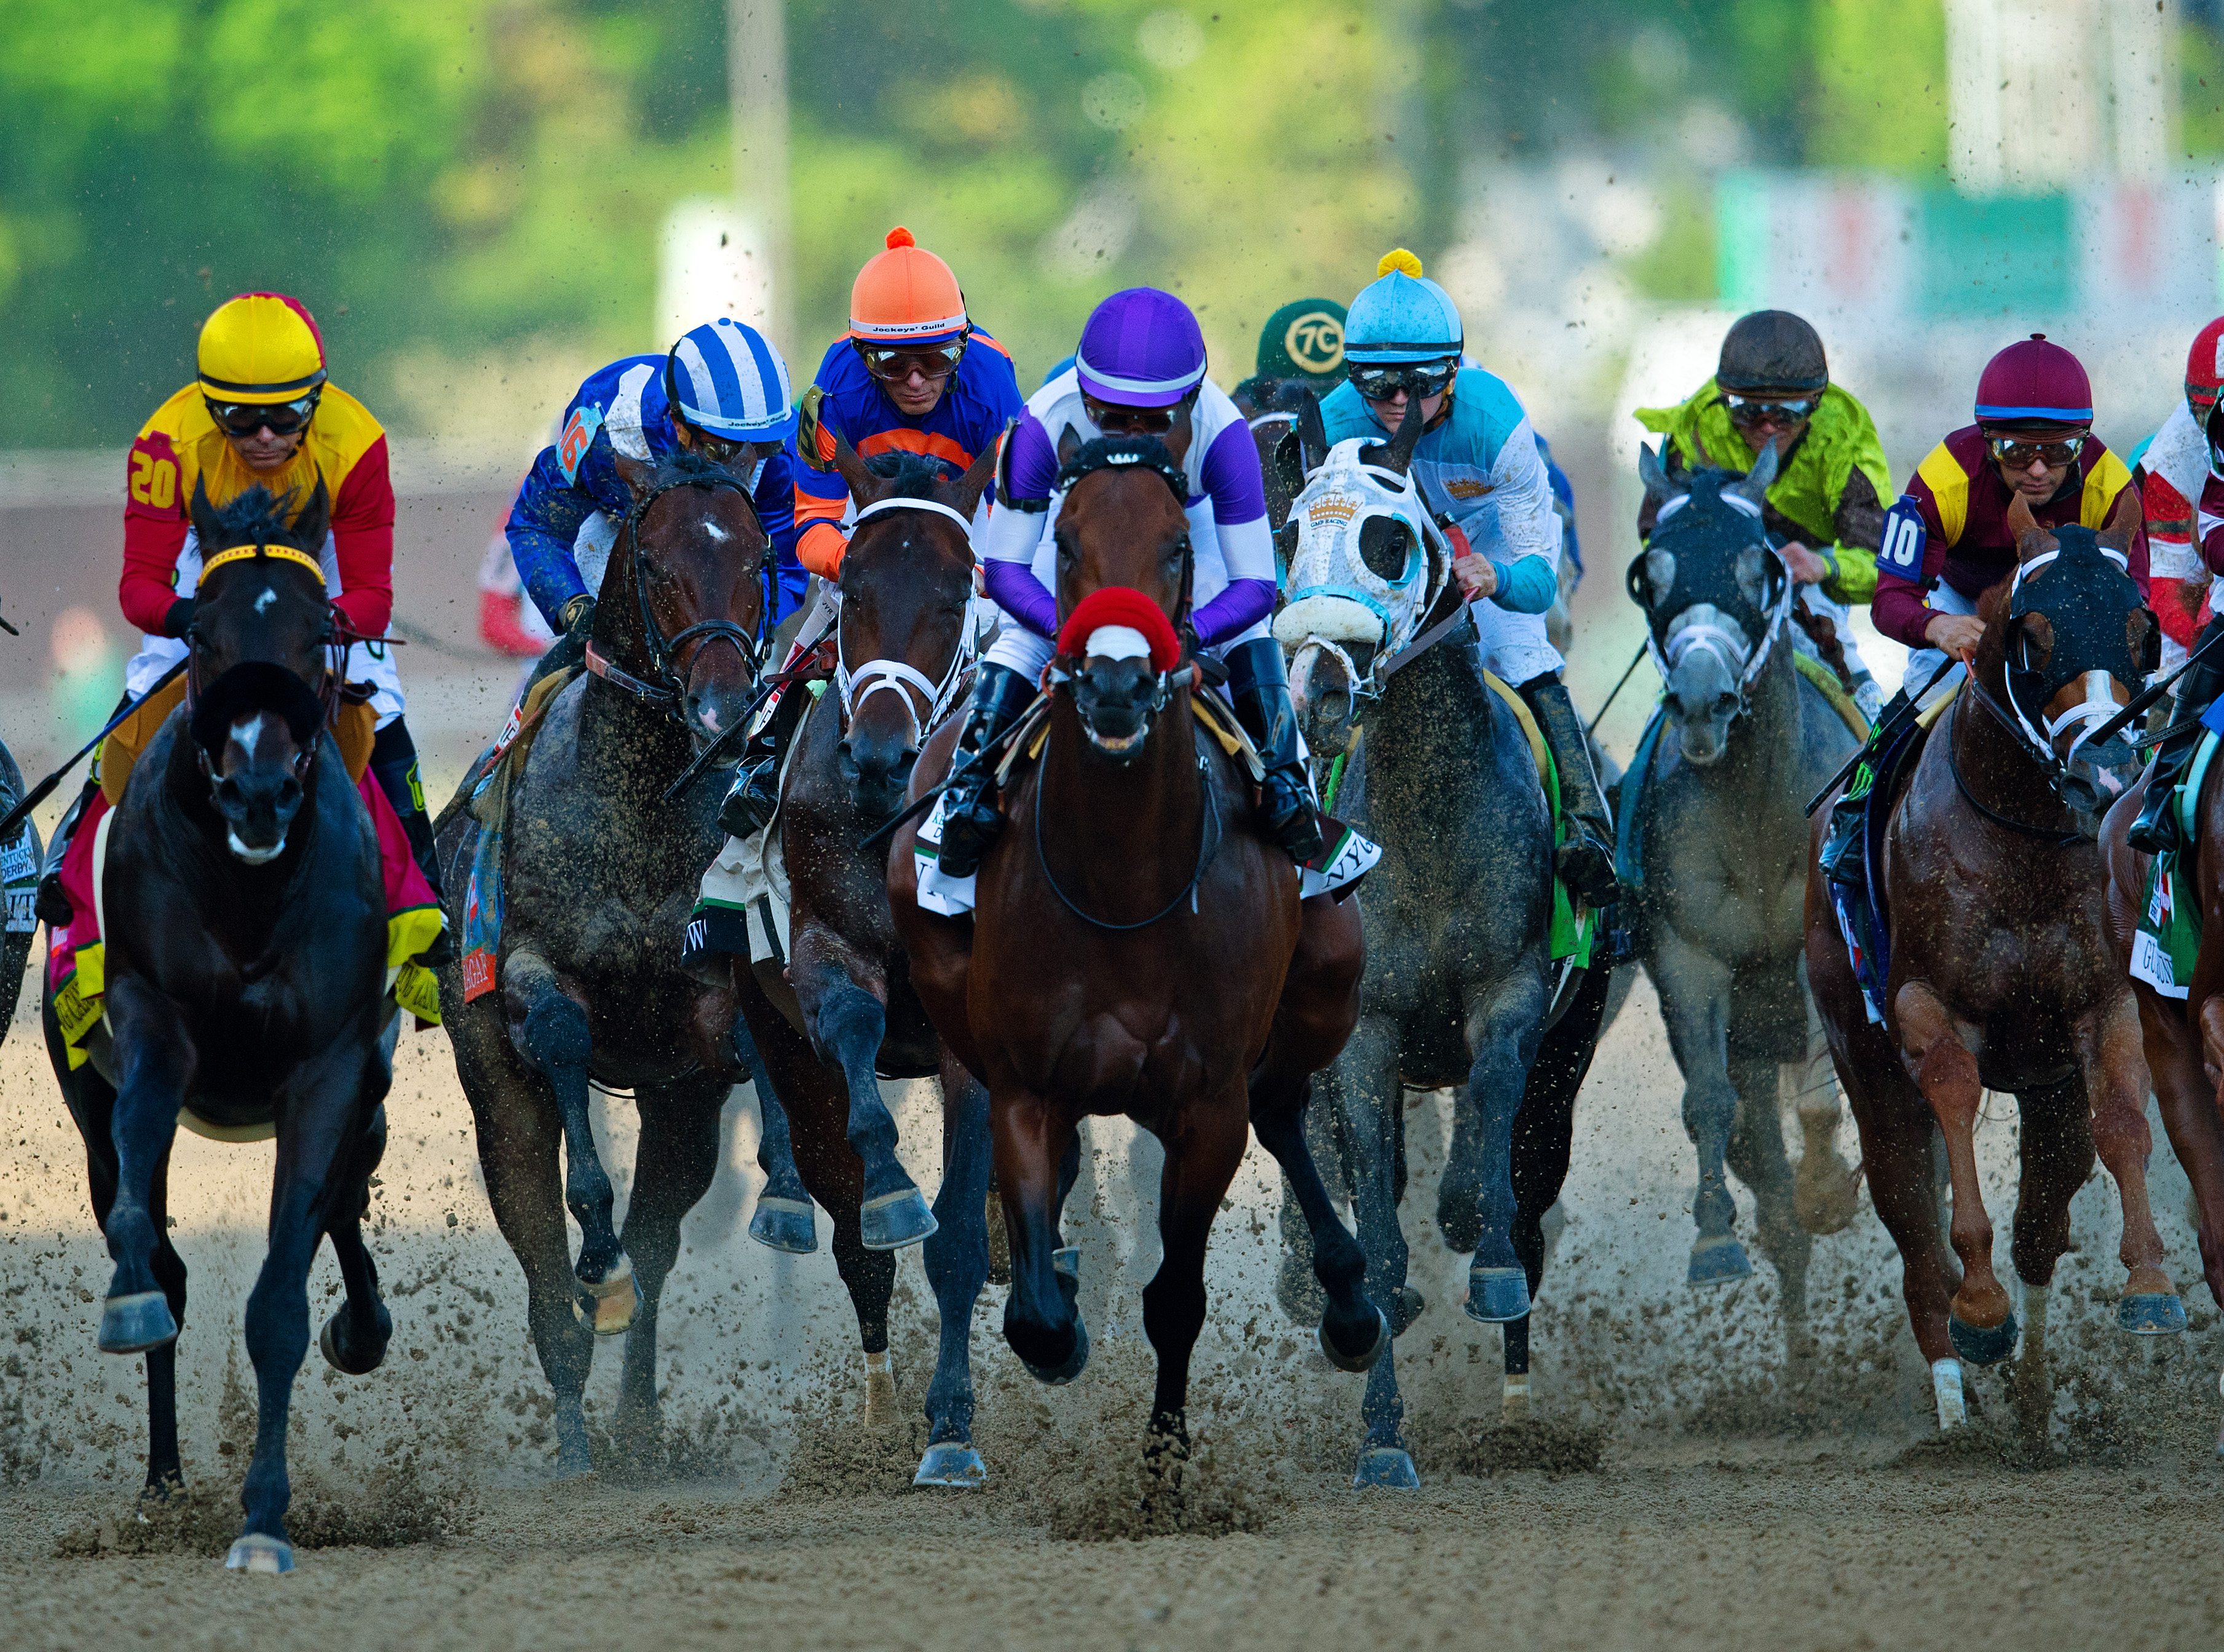 Nyquist, ridden by Mario Guitierrez (in purple), won the 142nd Kentucky Derby on Saturday by 1 1/4 lengths. Here are some other images that caught our eye on May 7.